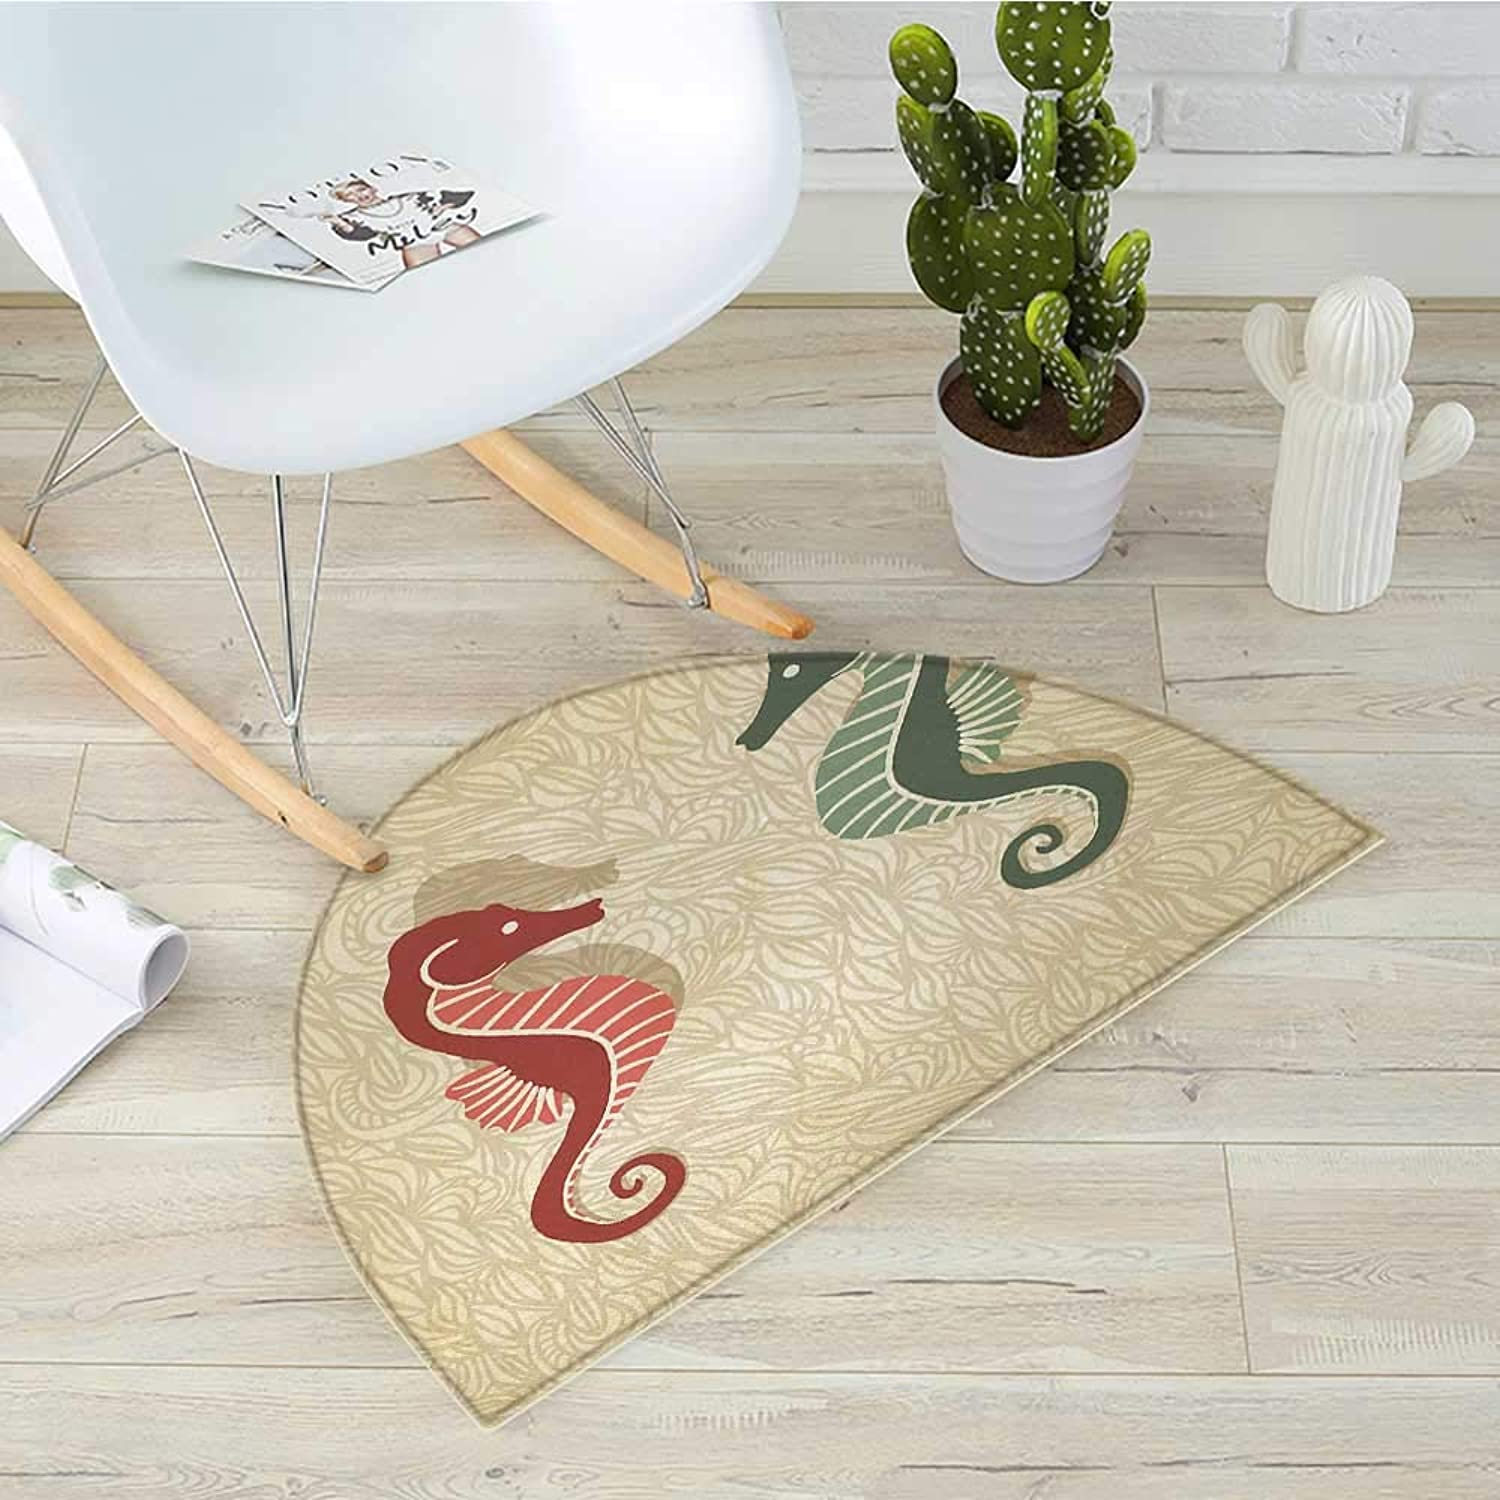 Seahorses Nautical Semicircular CushionGraphic colorful Beach Coral Reef Vintage Design Entry Door Mat H 31.5  xD 47.2  Sand Brown Forest Green Red